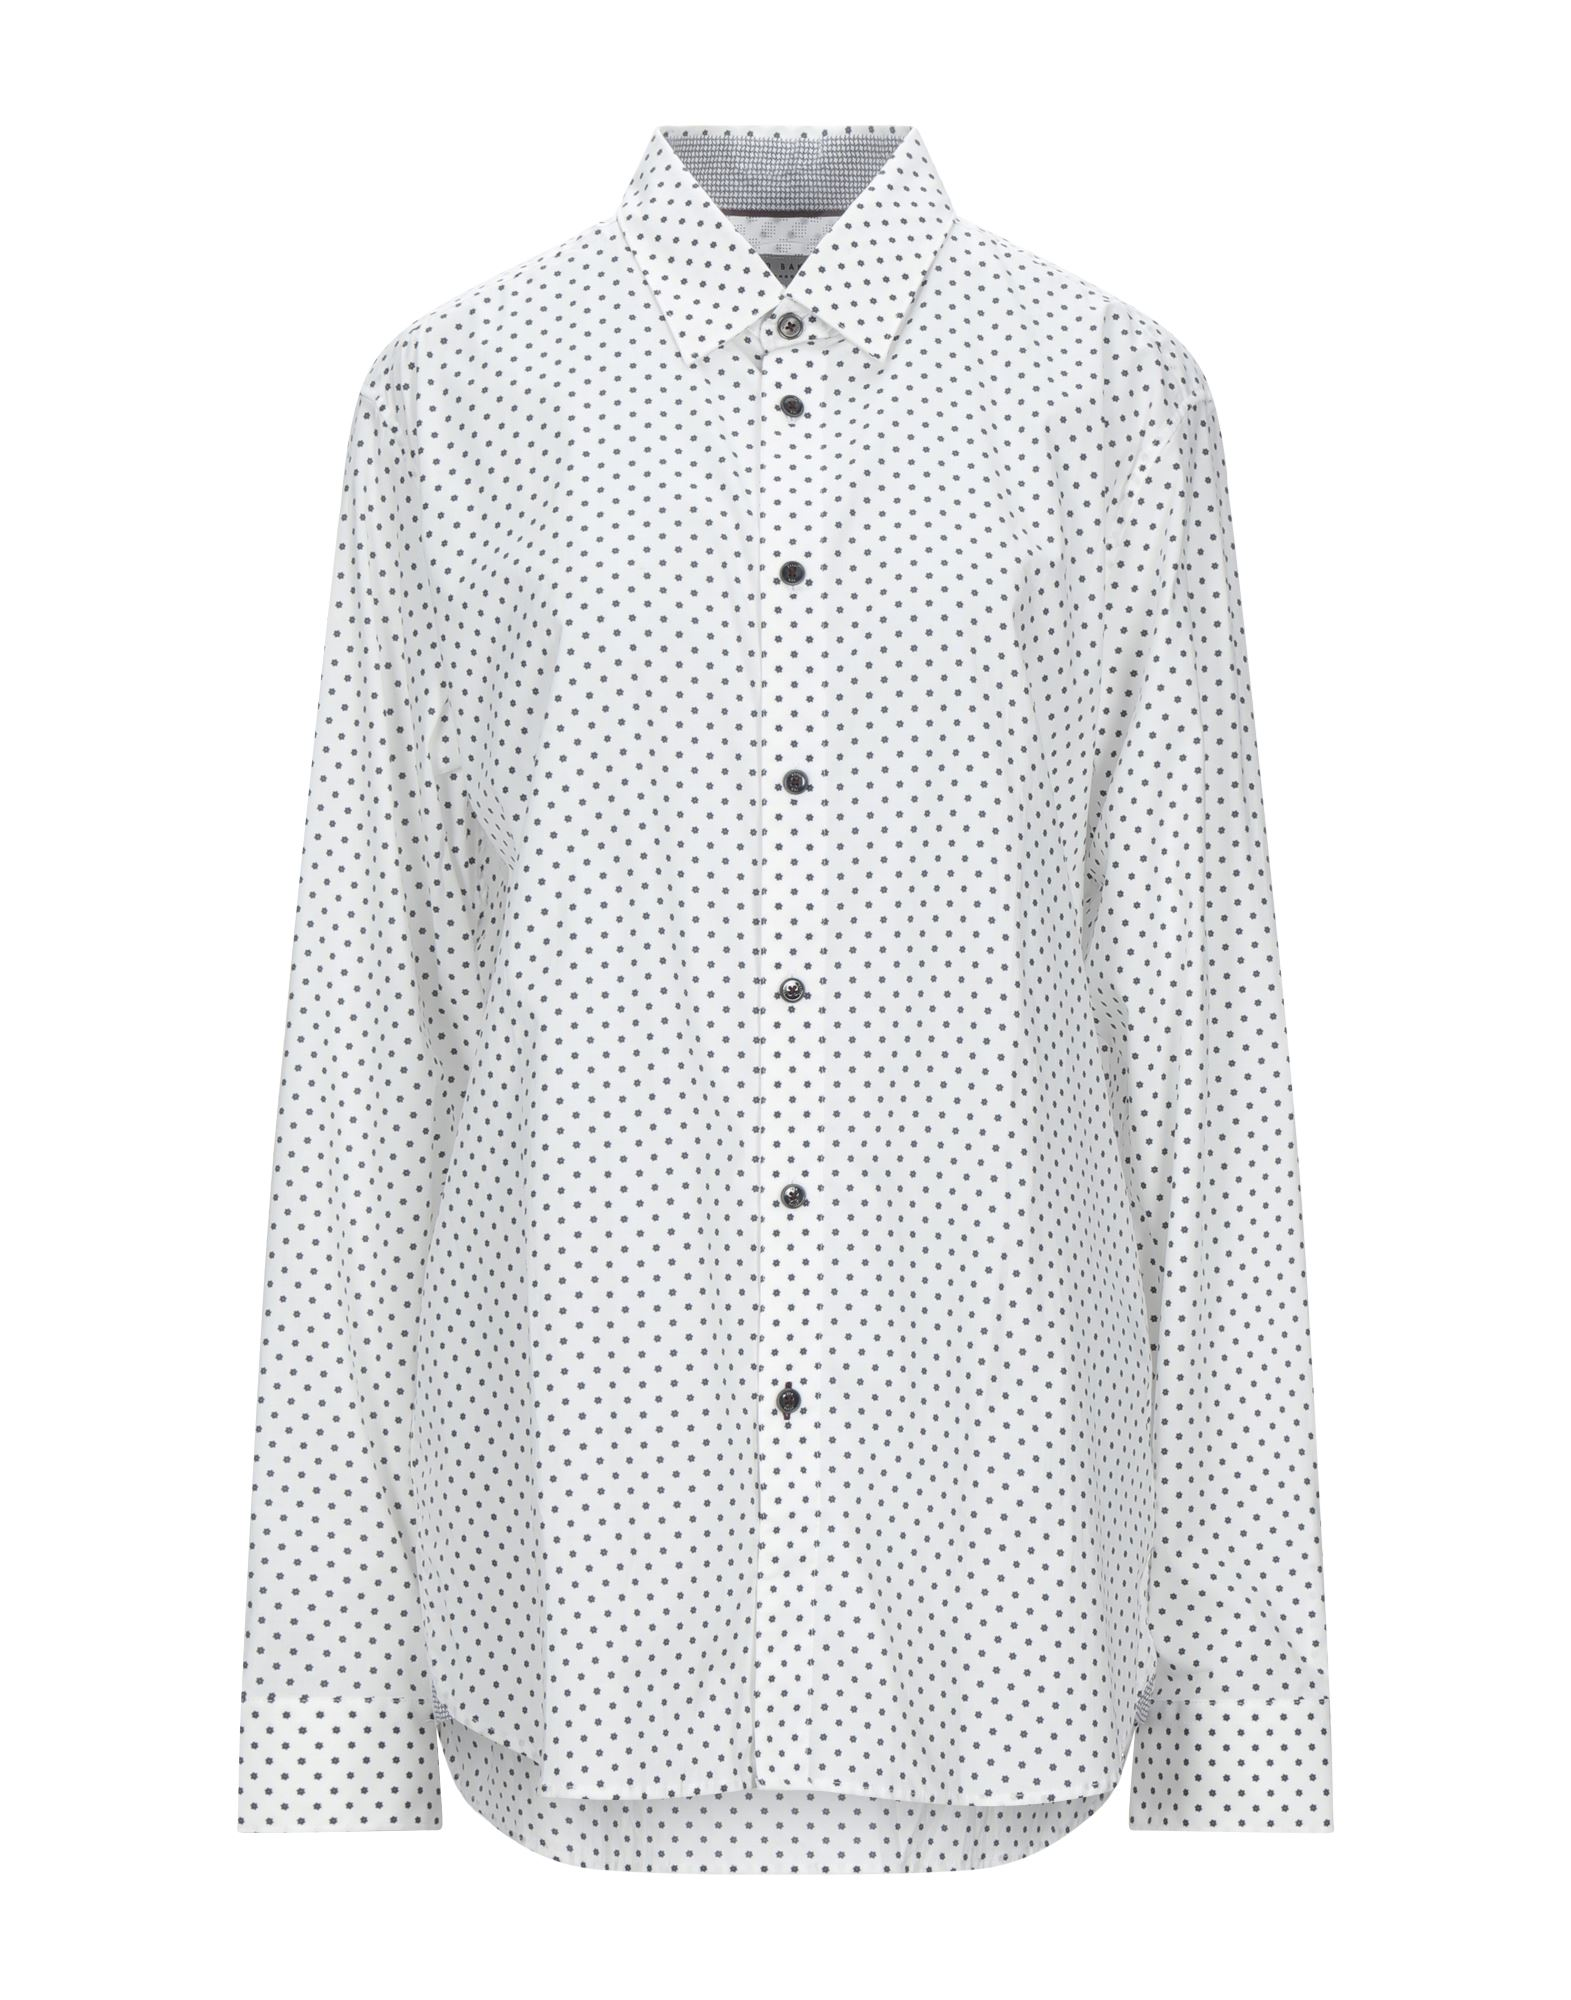 TED BAKER Shirts - Item 38959406